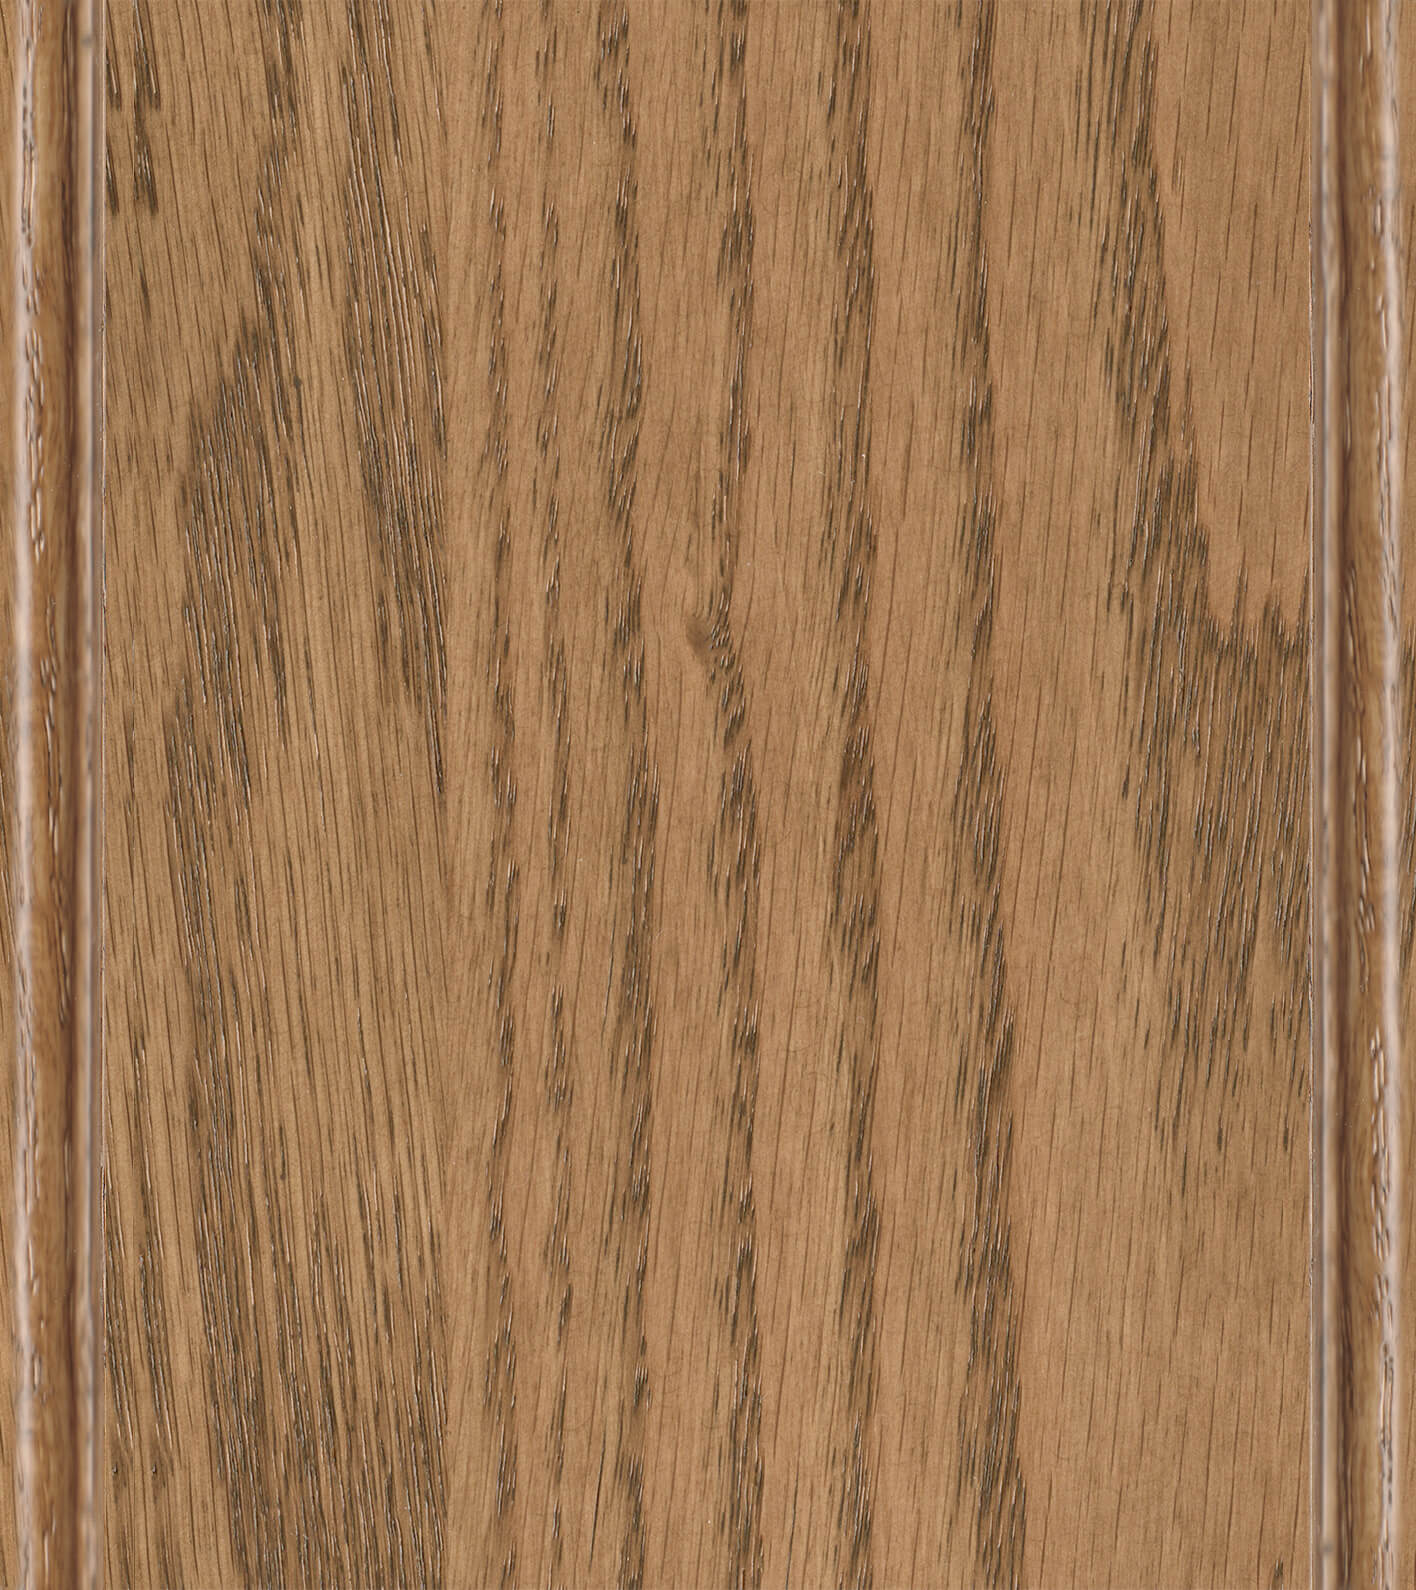 Toast Stain on Red Oak